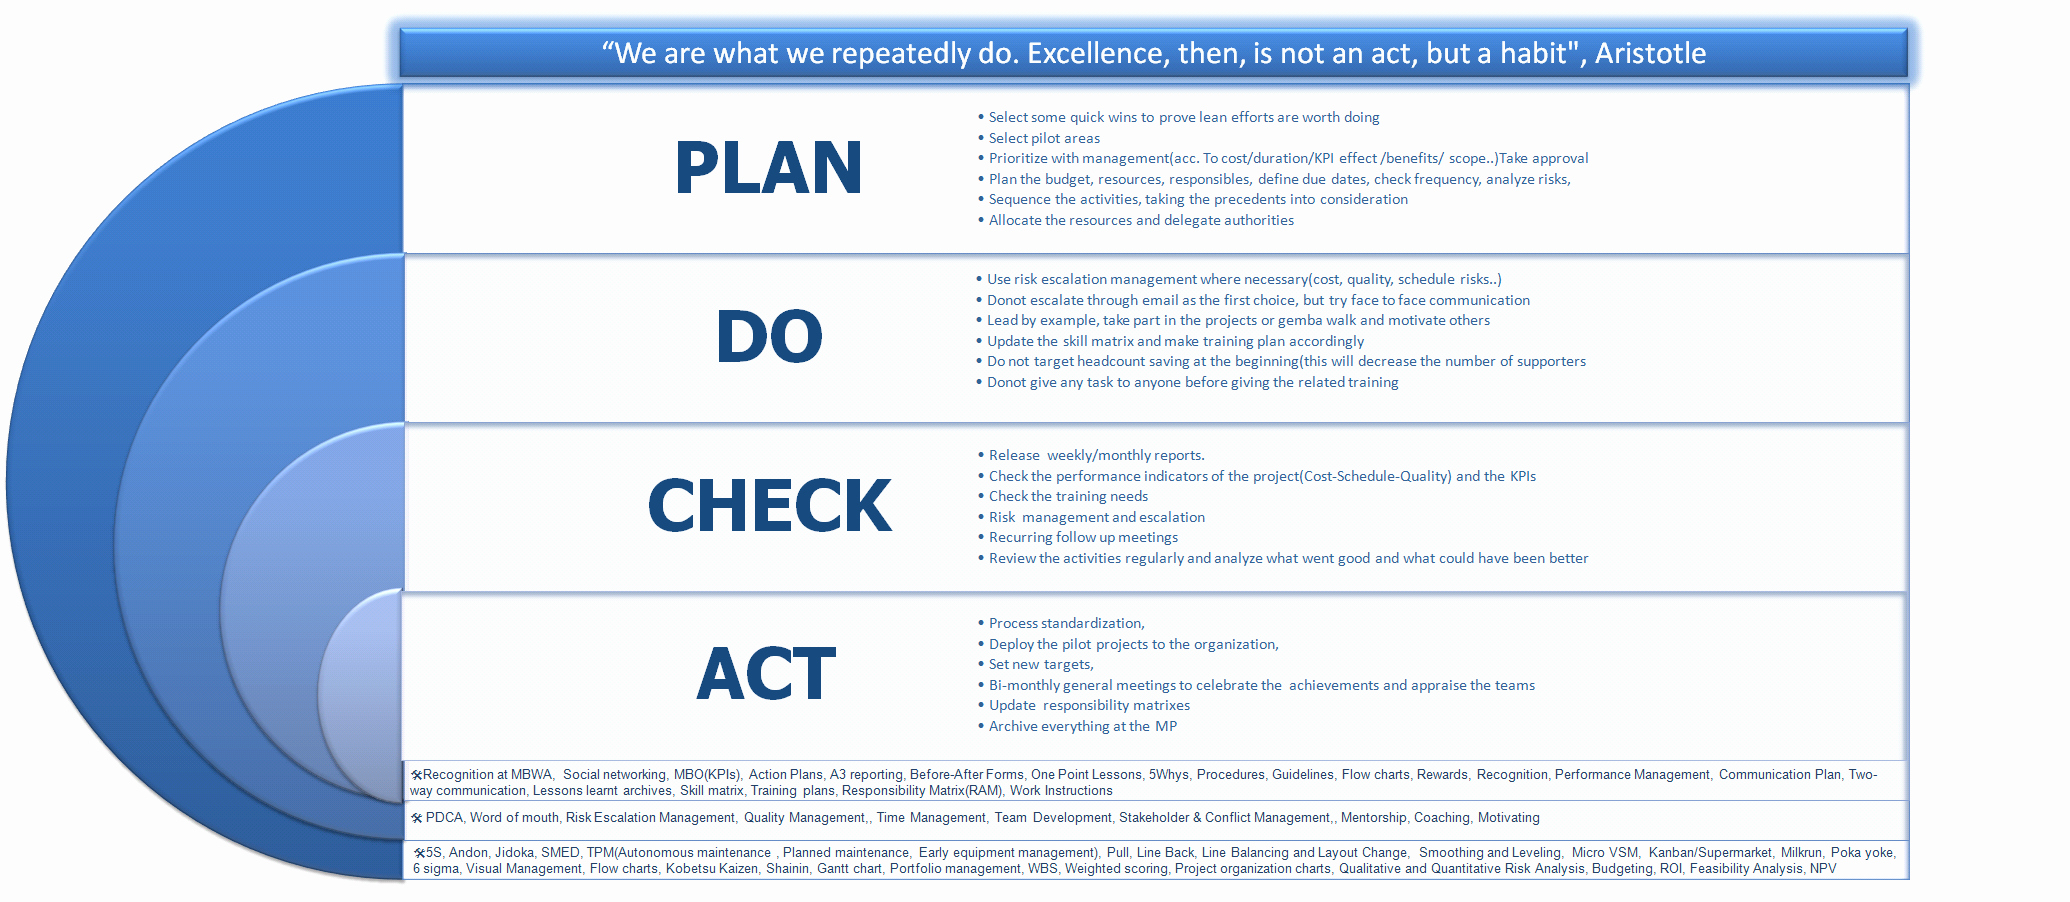 Deployment Plan Project Management Awesome the Macro Implementation Plan Of Lean In Dmaic format